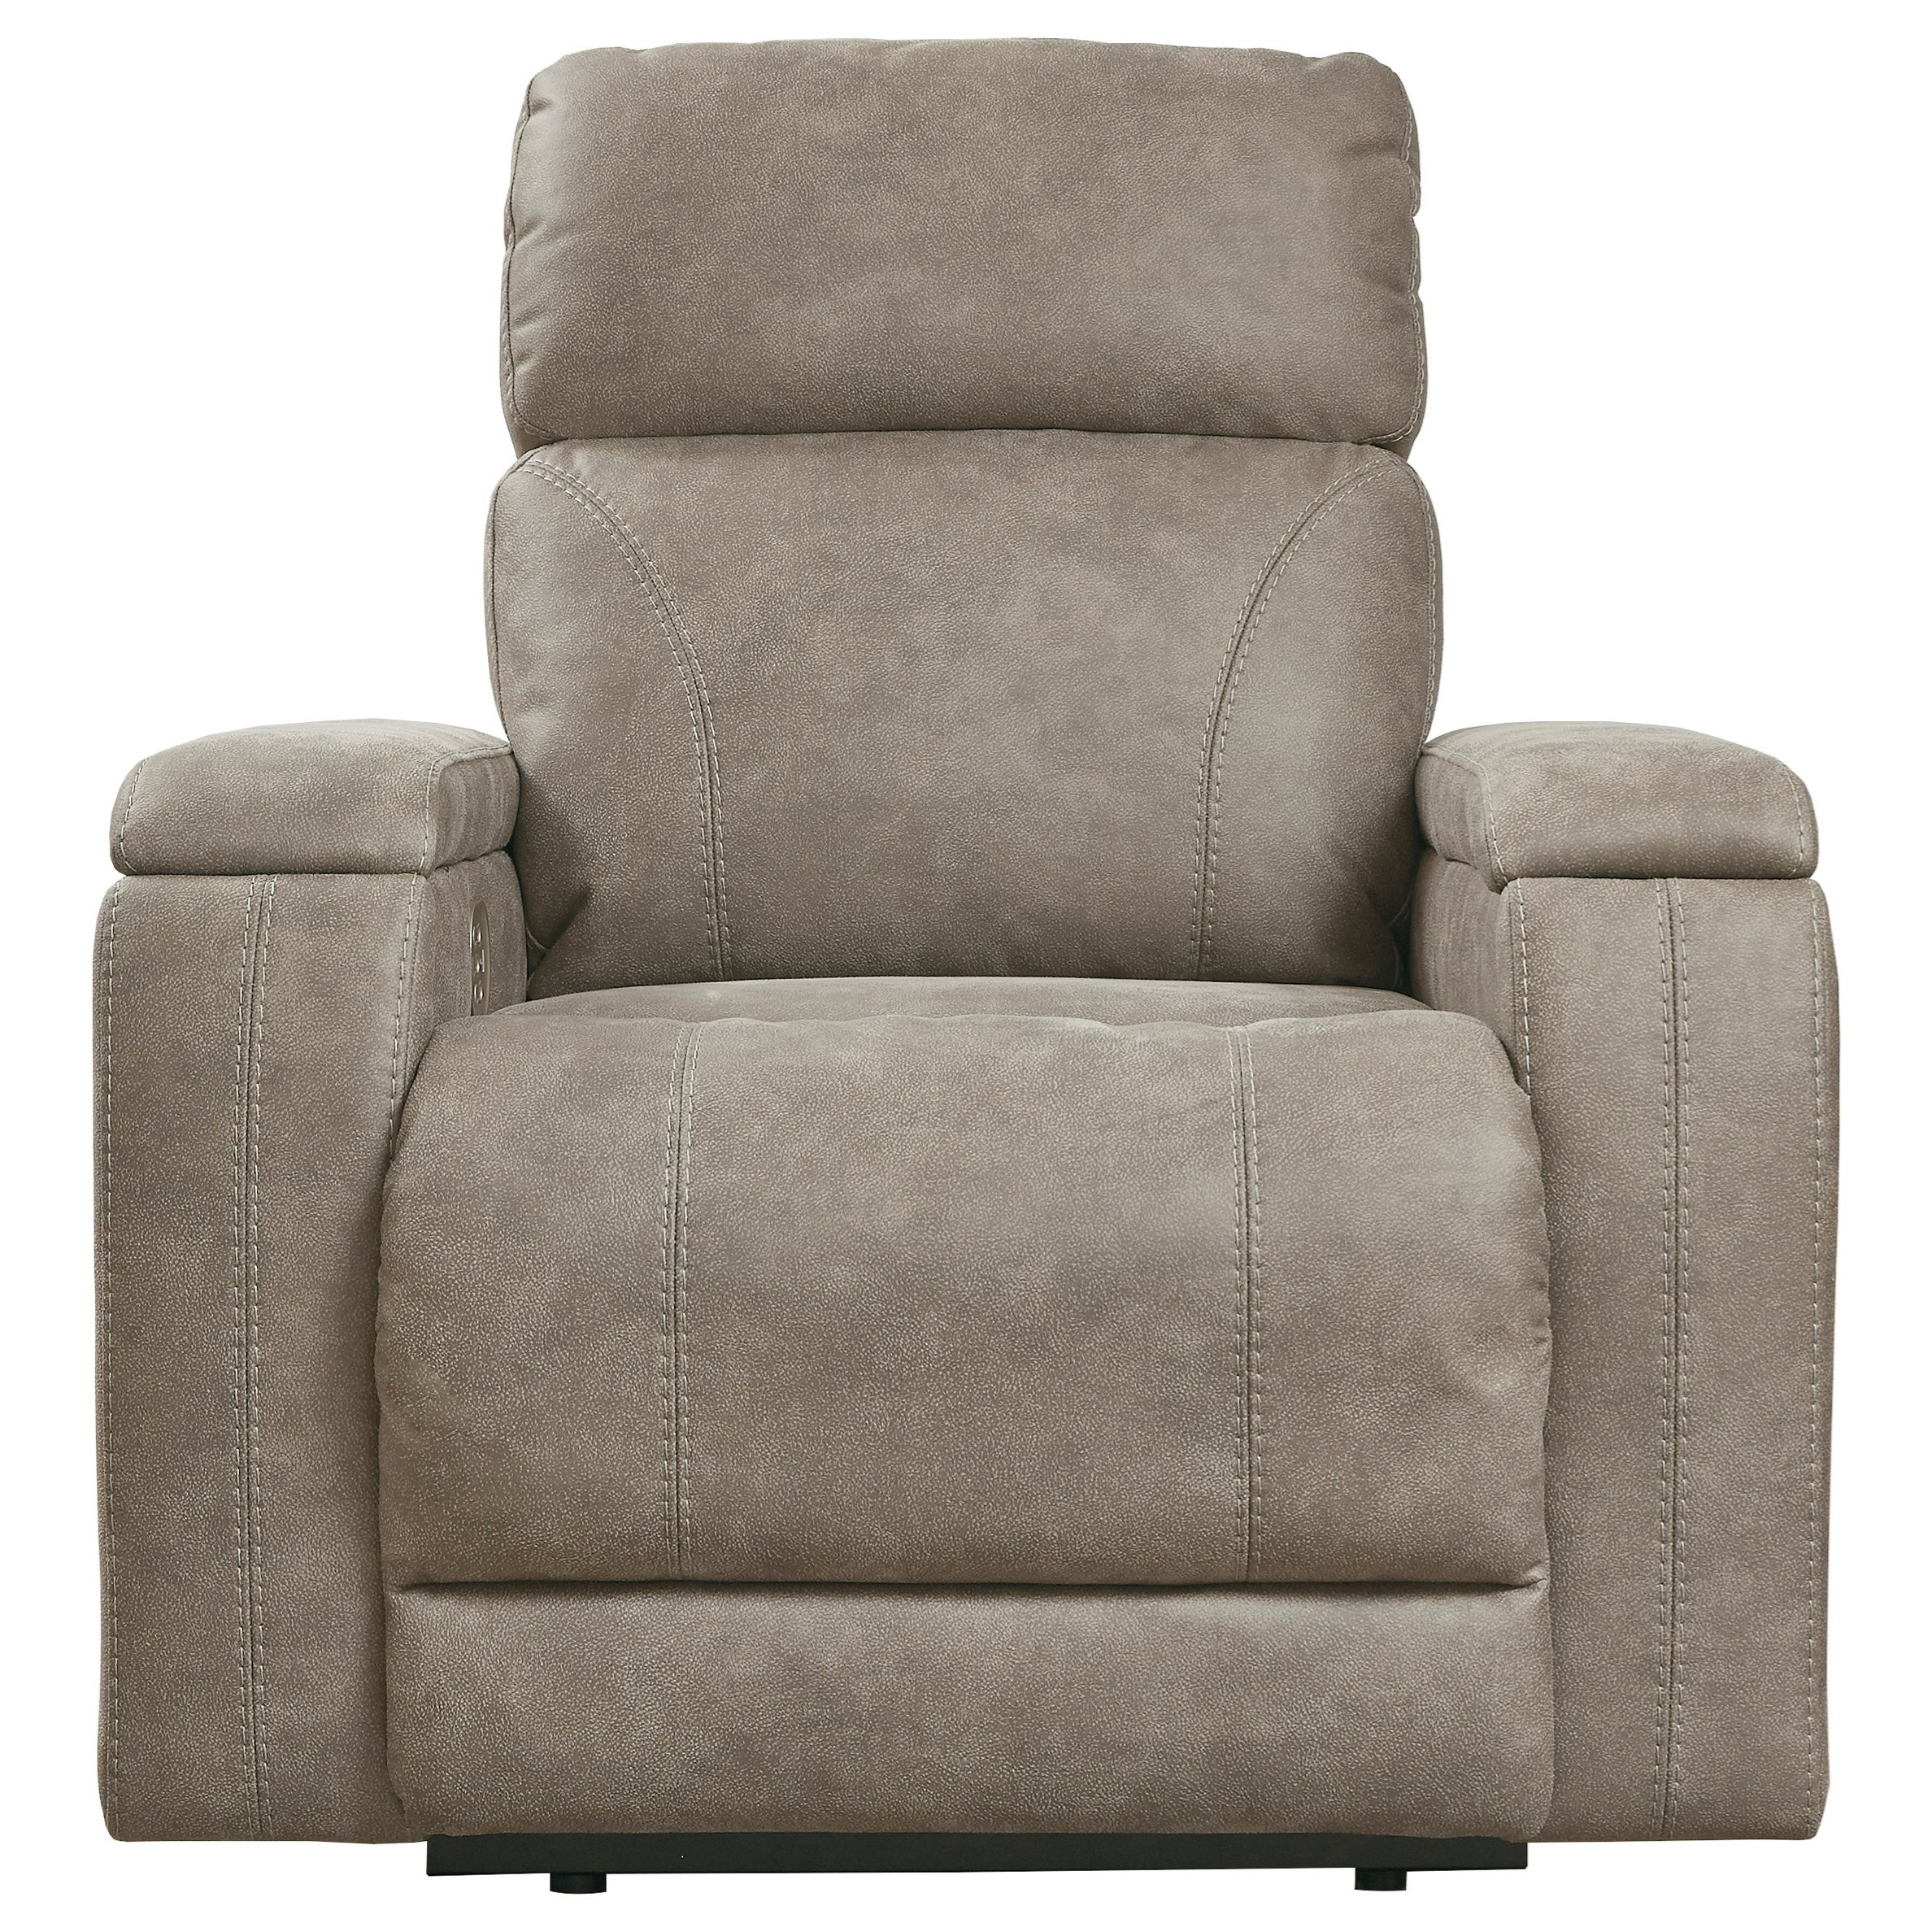 Rowlett Power Recliner with Adjustable Headrest by Signature Design by Ashley at Value City Furniture